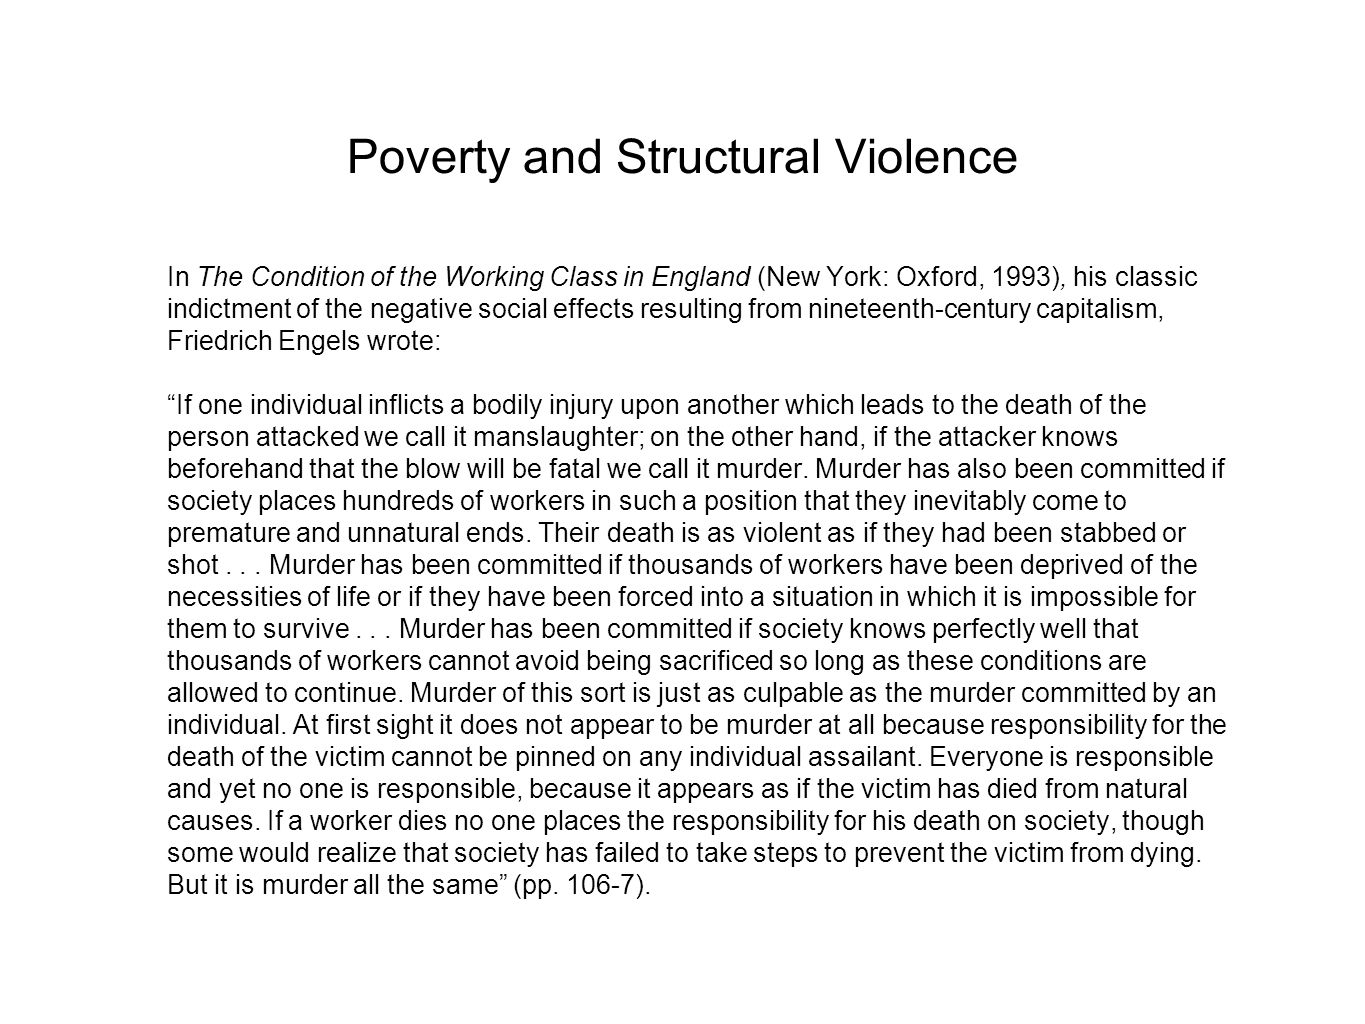 Poverty and Structural Violence In The Condition of the Working Class in England (New York: Oxford, 1993), his classic indictment of the negative social effects resulting from nineteenth-century capitalism, Friedrich Engels wrote: If one individual inflicts a bodily injury upon another which leads to the death of the person attacked we call it manslaughter; on the other hand, if the attacker knows beforehand that the blow will be fatal we call it murder.